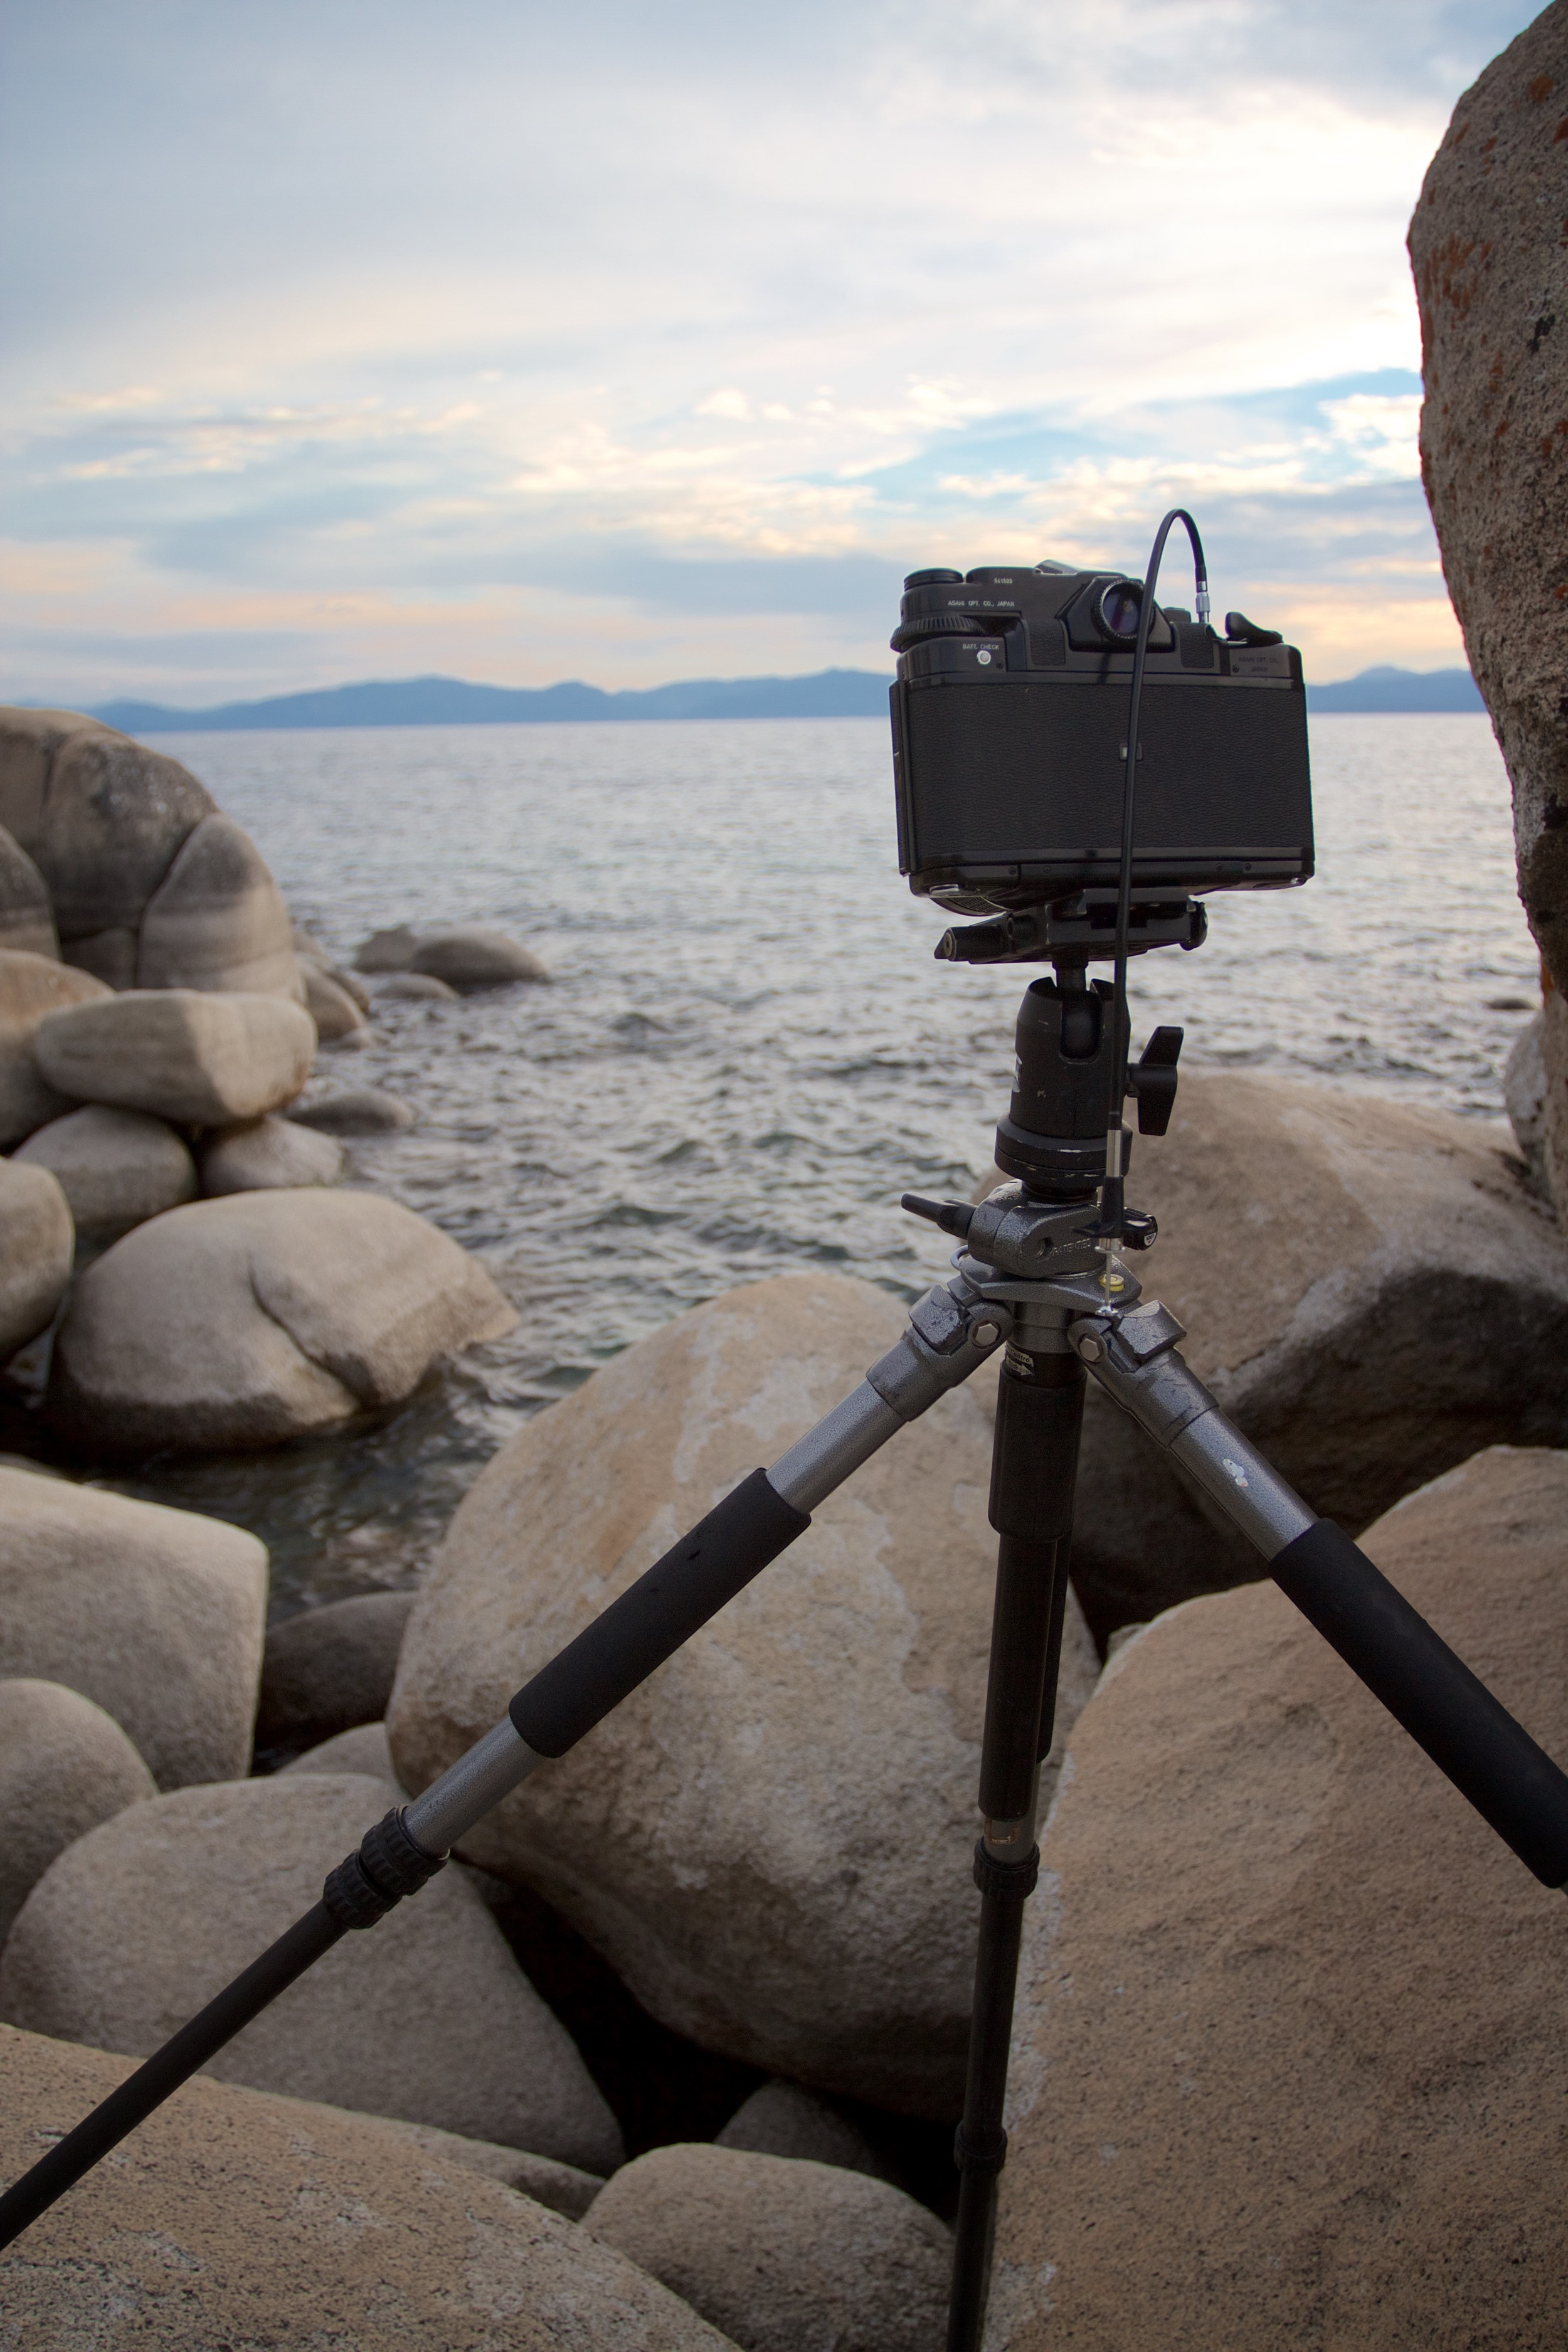 Pentax 6x7 with 55mm f/4 loaded with Kodak Ektar 100 perched on granite boulders while waiting for the light